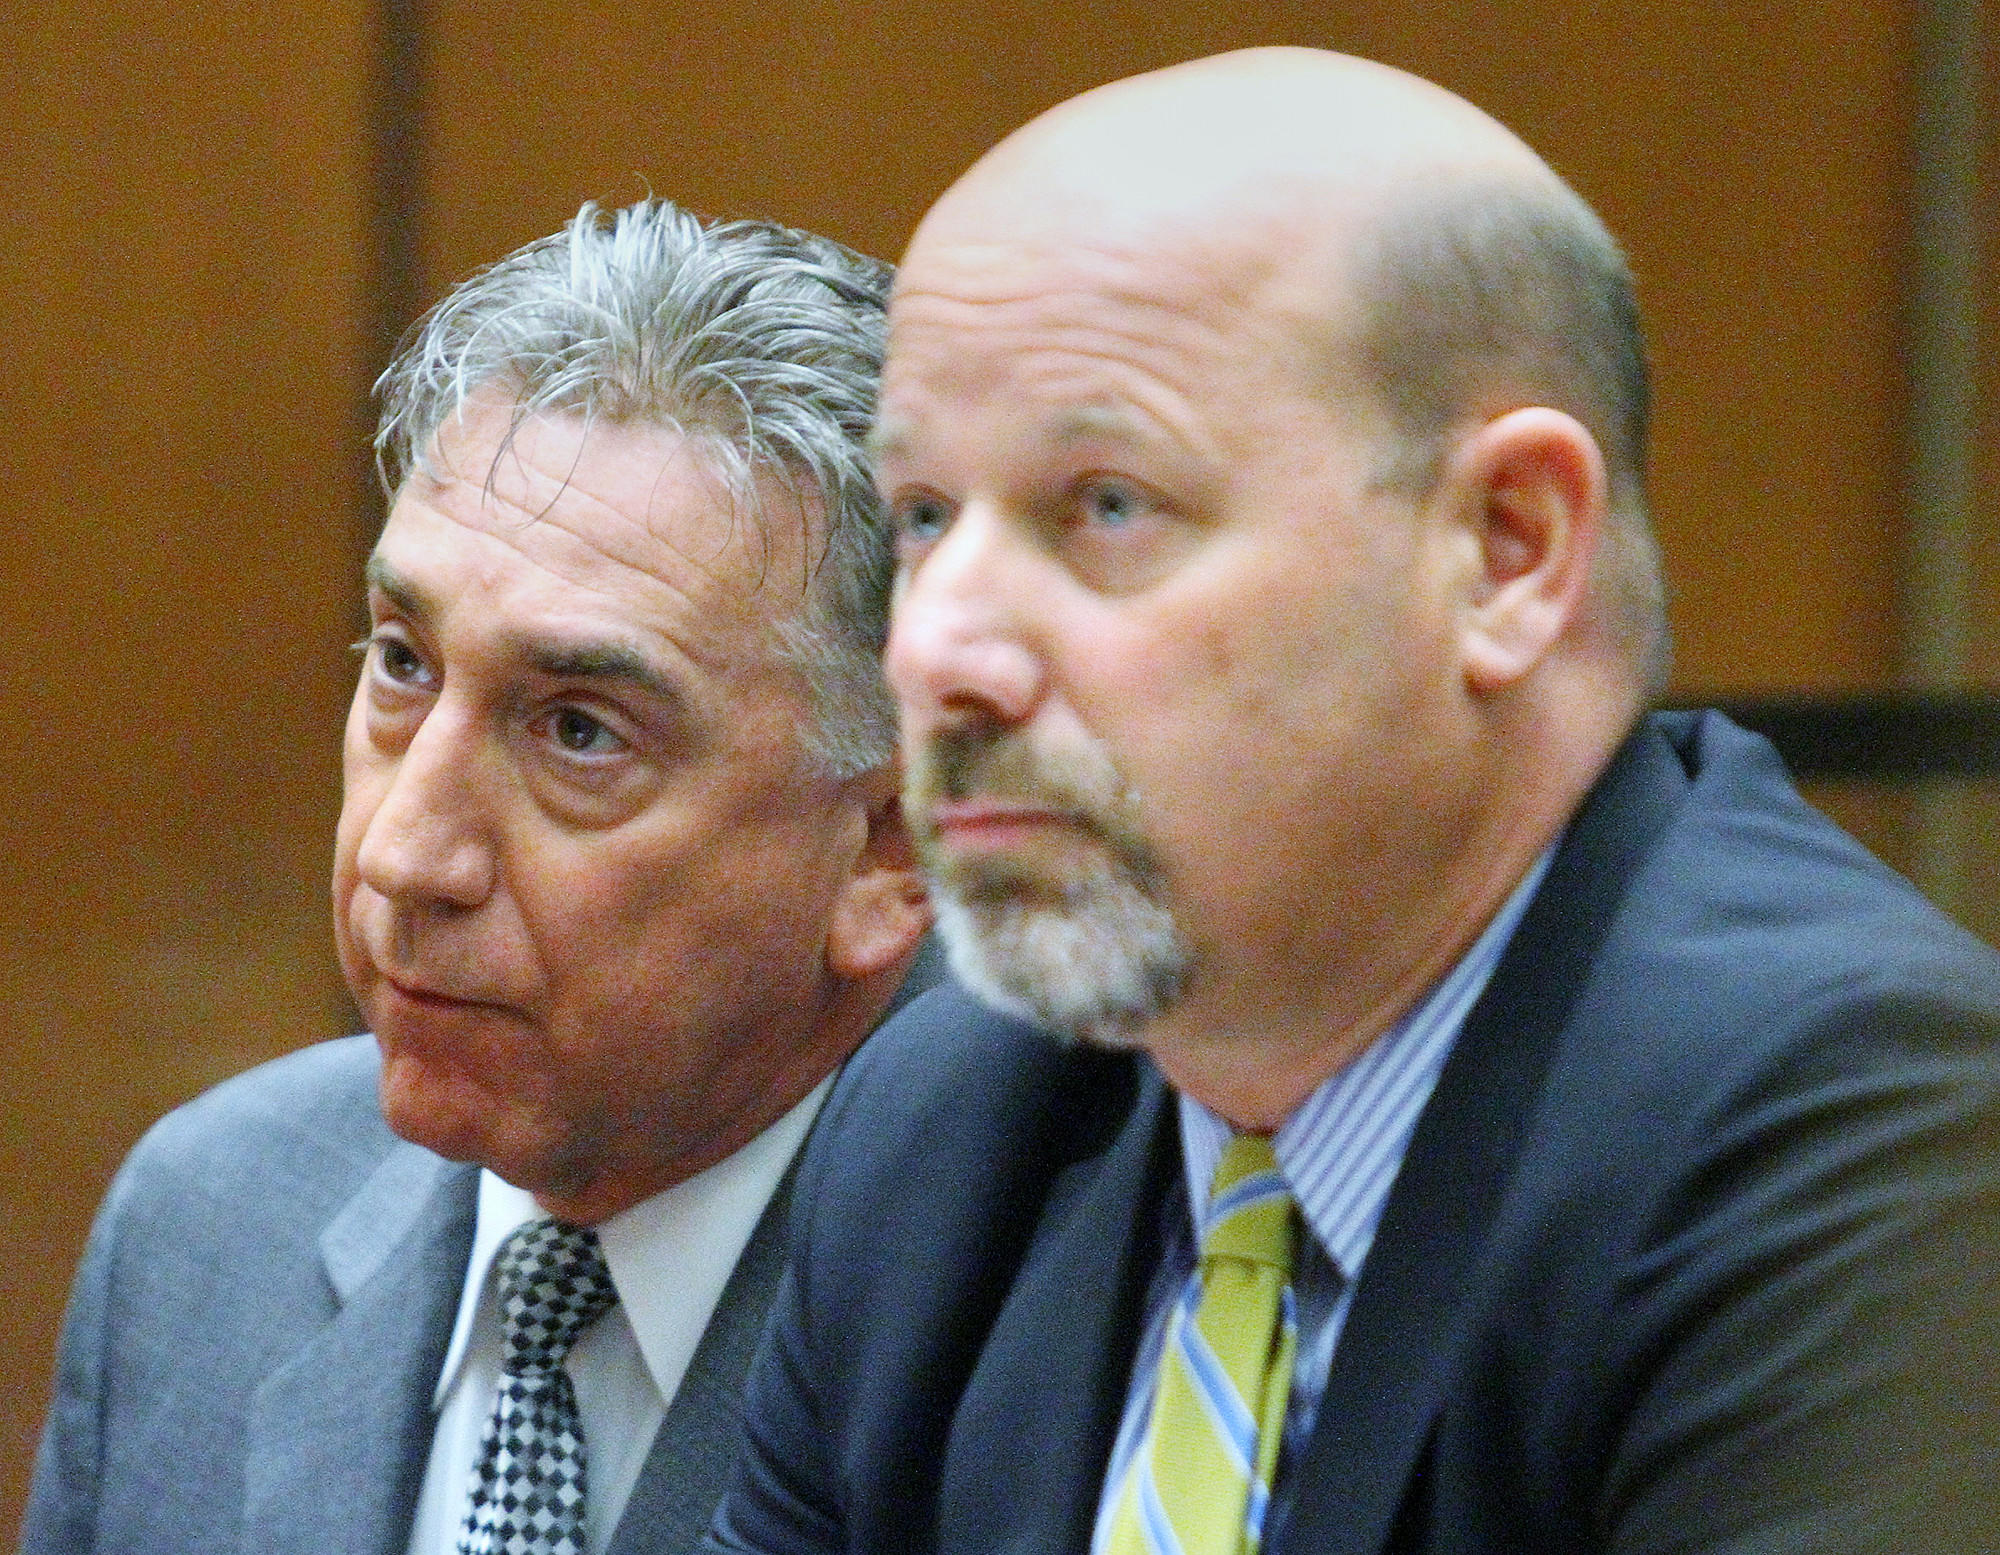 Ex-Glendale Mayor John Drayman, with his attorney Sean McDonald, at his sentencing in Los Angeles County Superior Court on Monday, April 7, 2014.